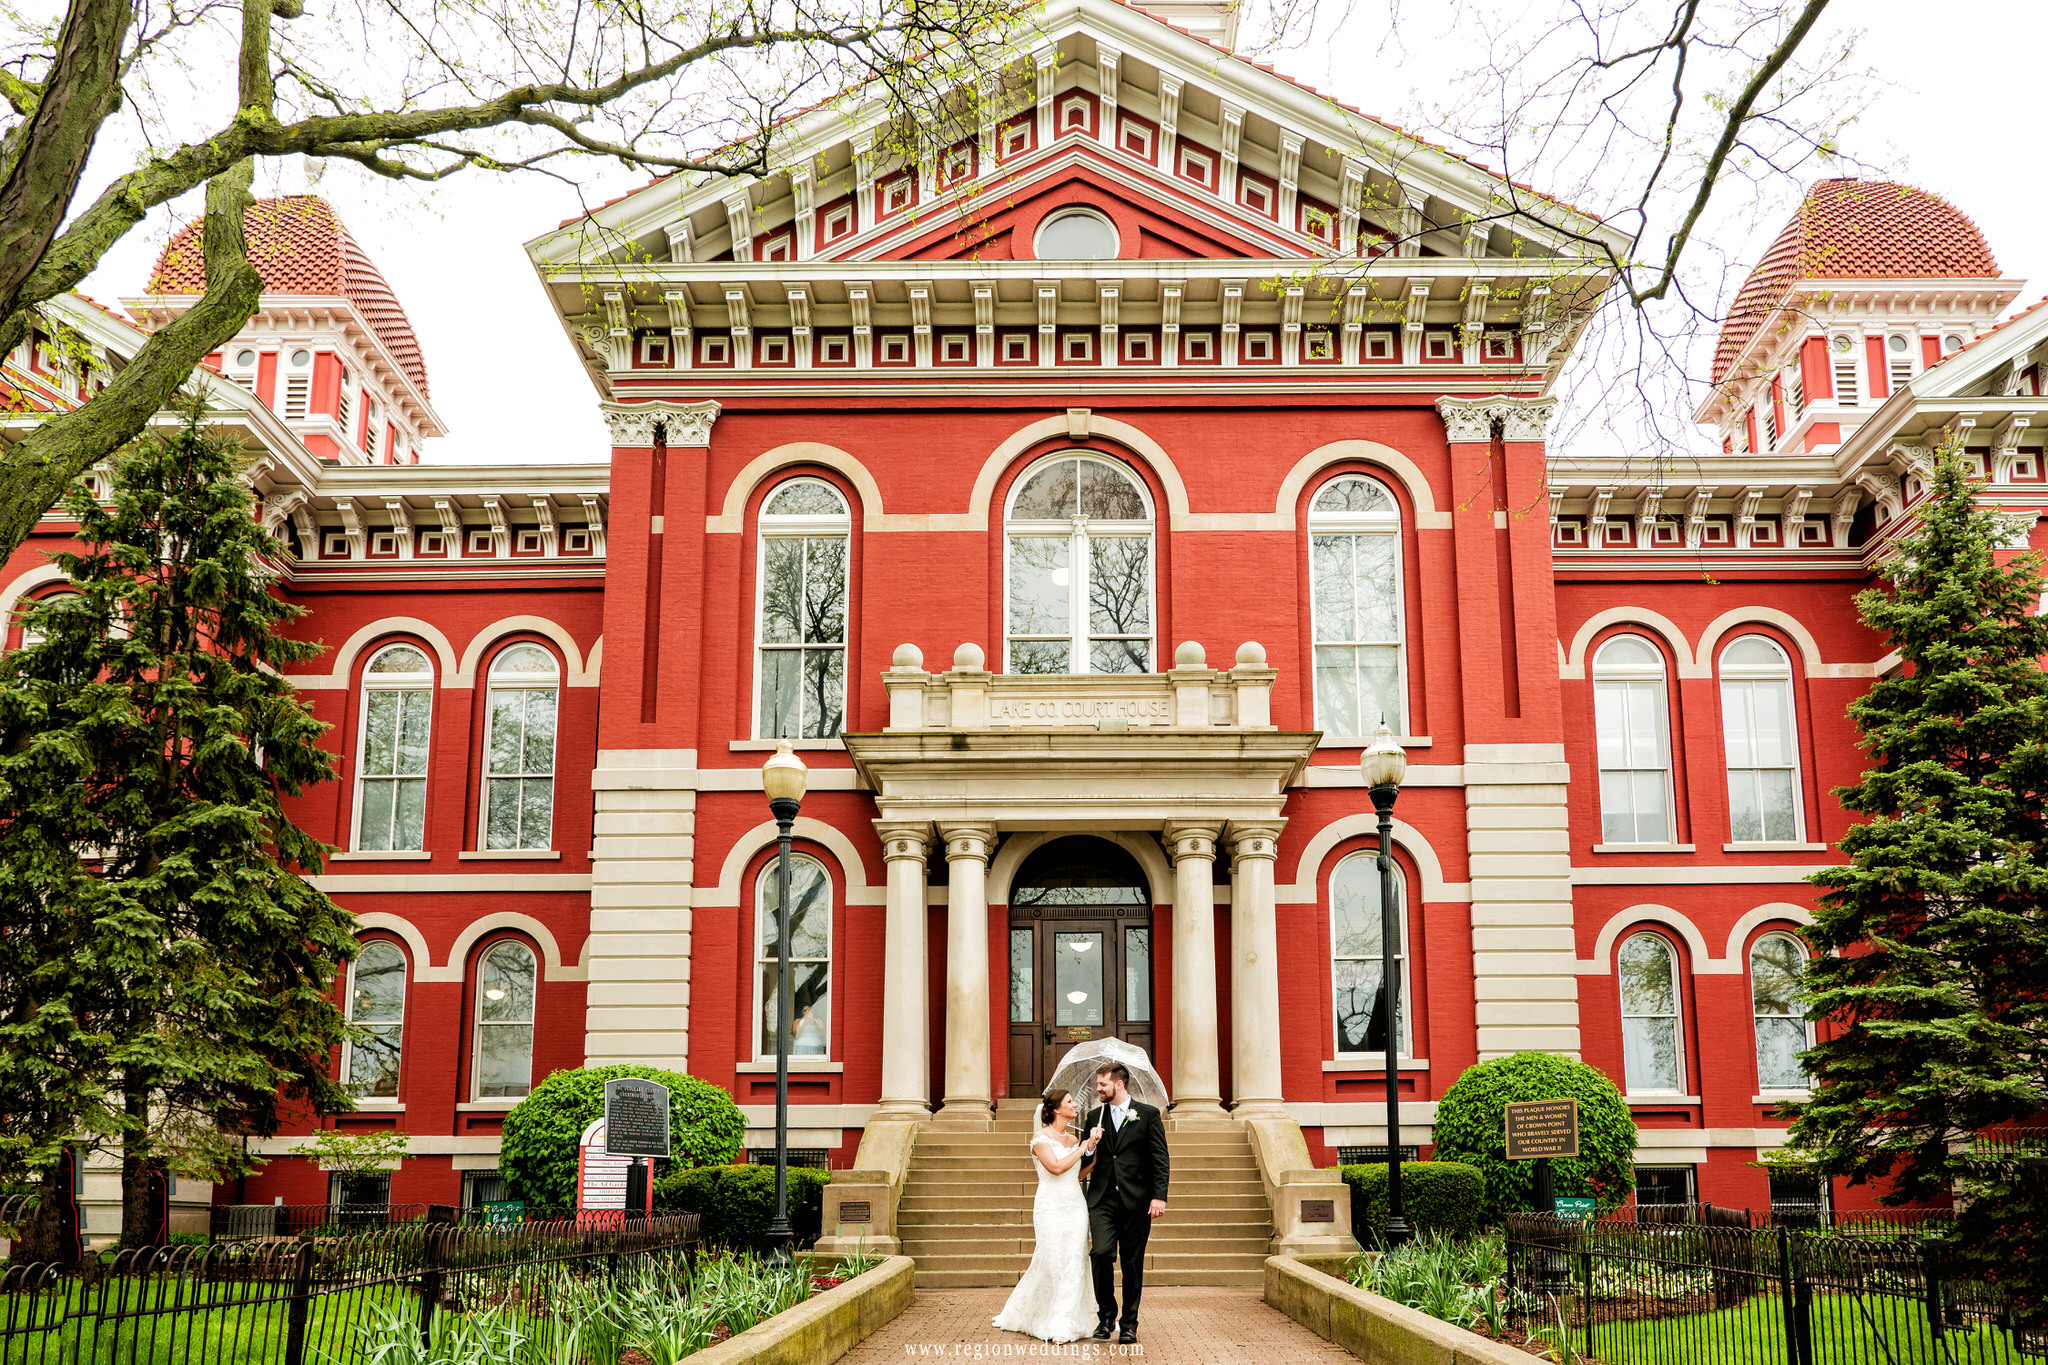 Newlyweds take a walk in the rain in front of the Old Crown Point Courthouse.